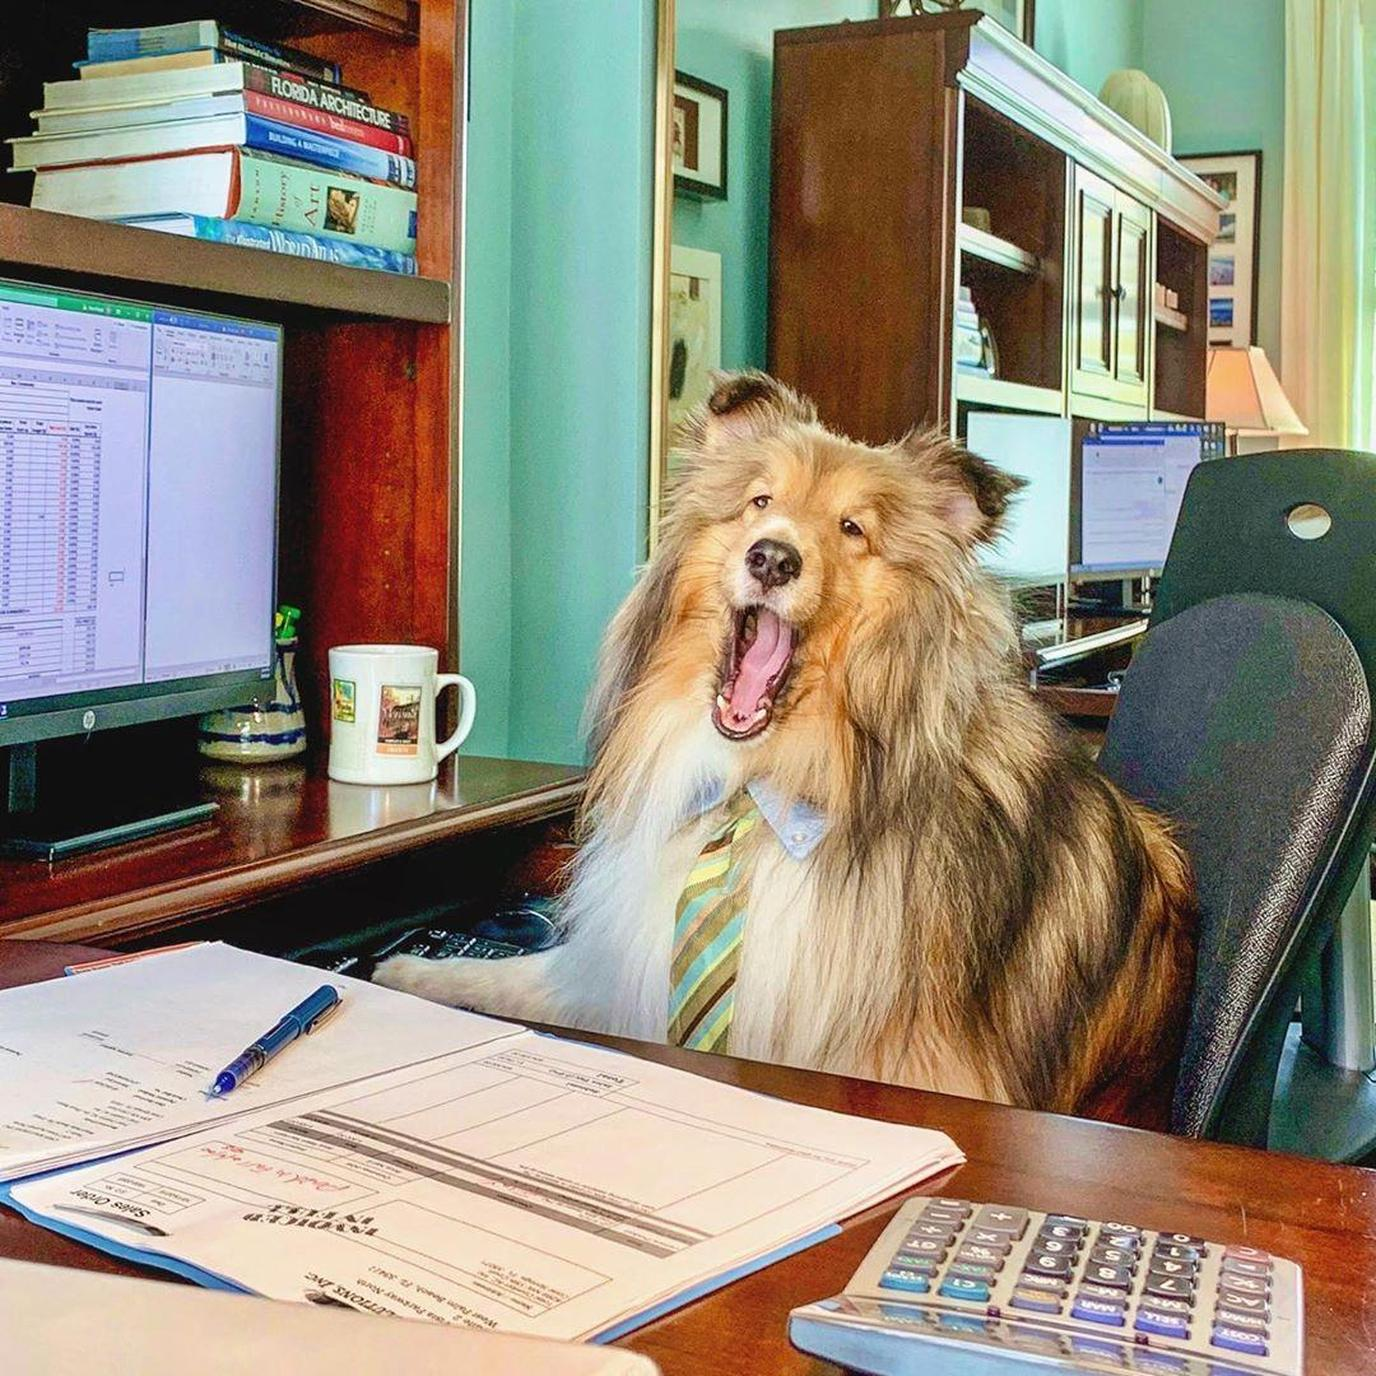 A Fluffy Dog Sits in a Pet-Friendly Office.